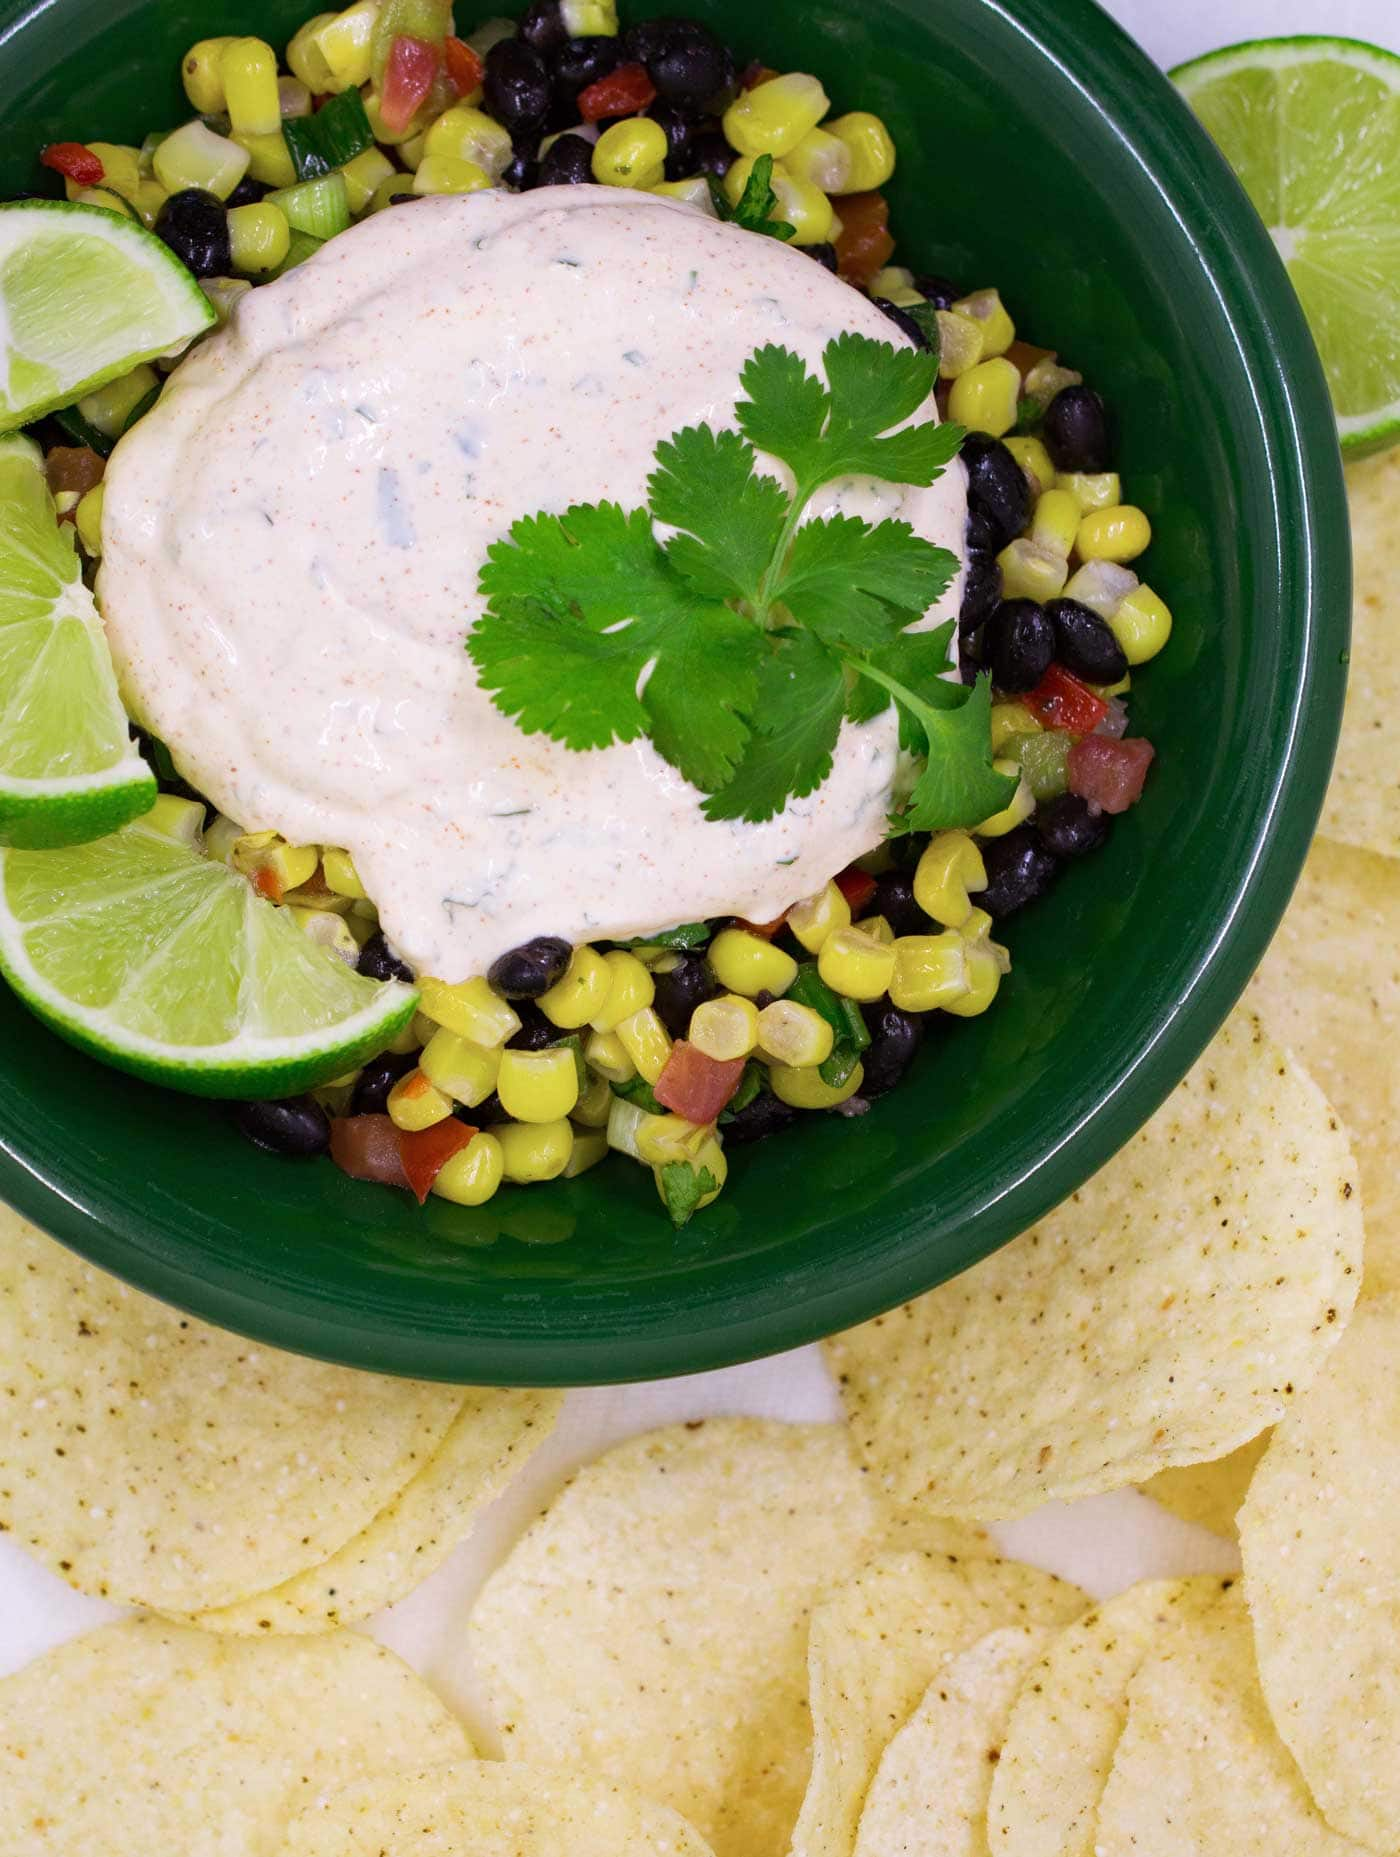 Chipotle Lime Crema adds creamy, spicy, citrusy goodness to tacos, burritos, enchiladas, grilled meats and more.